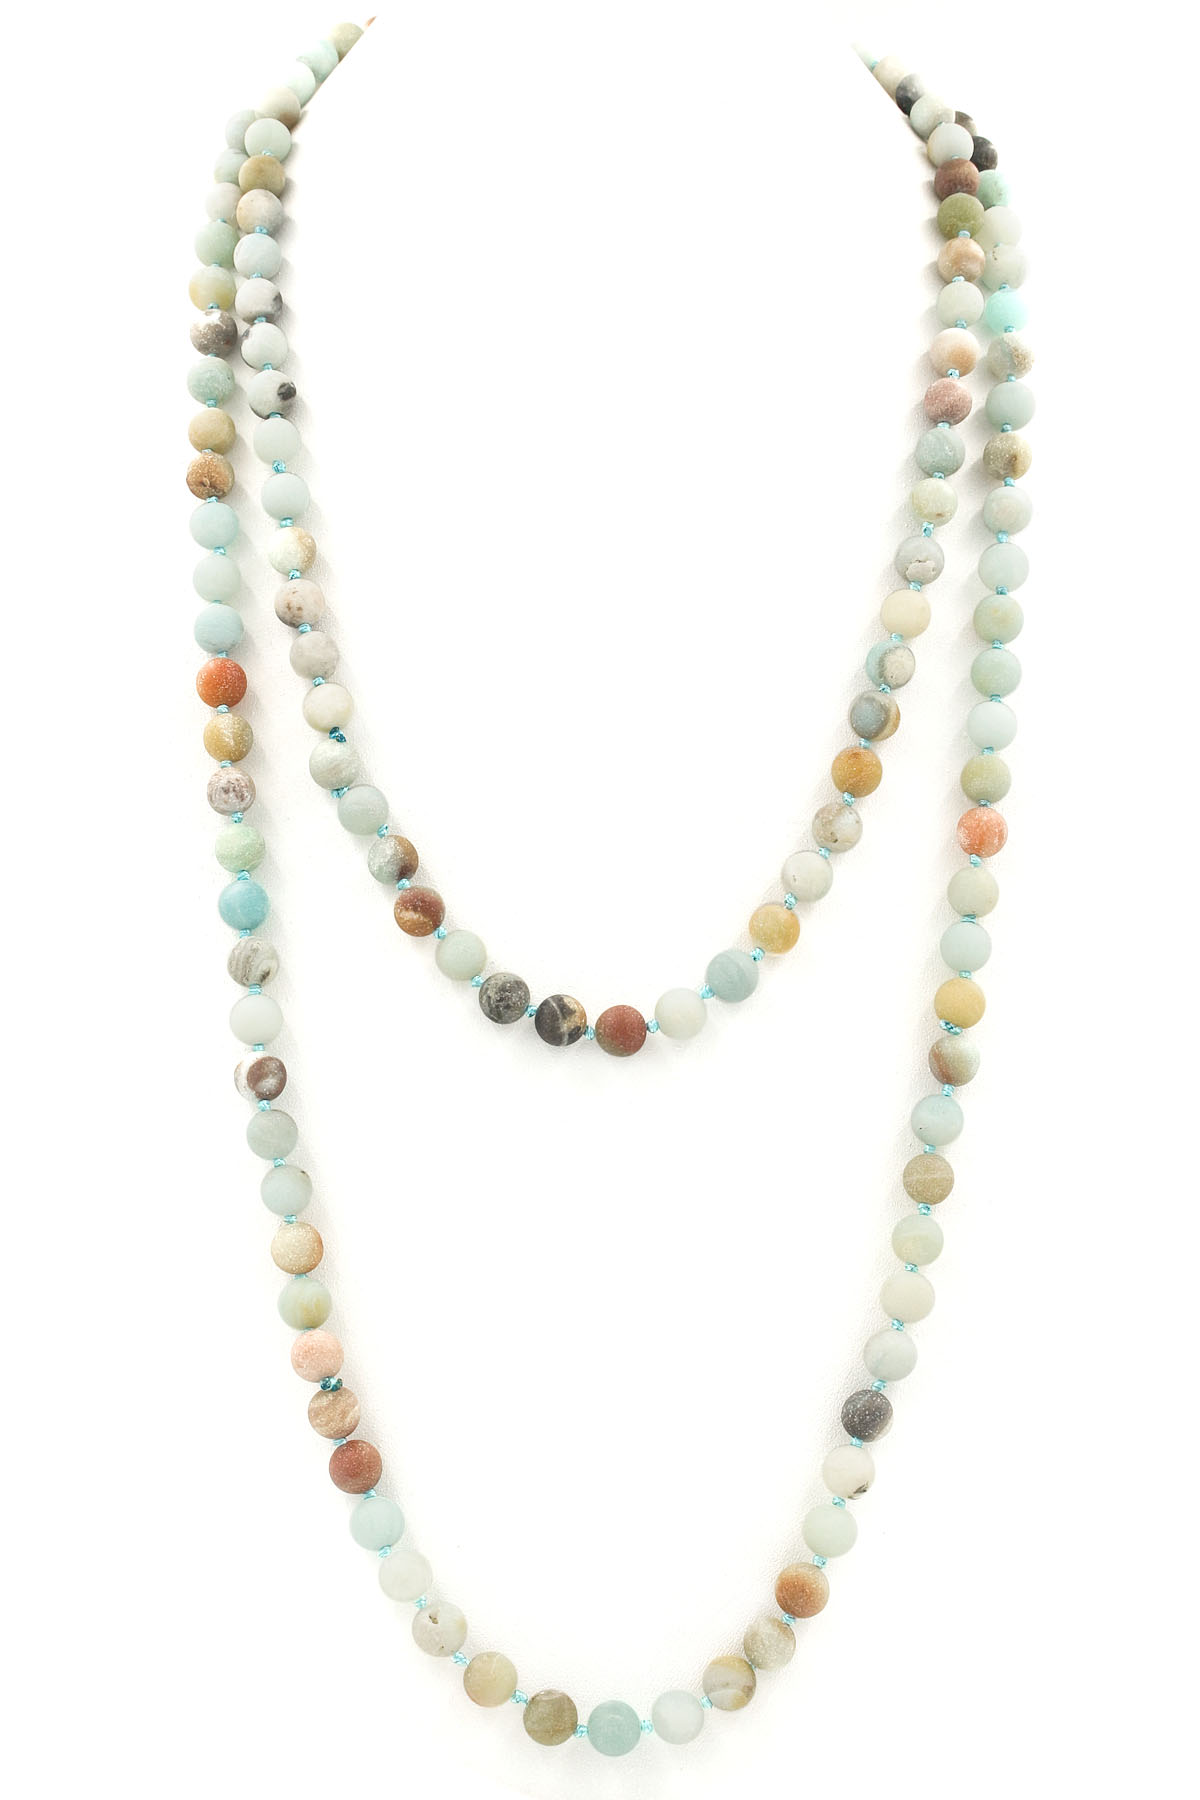 Marble Stone Jewelry : Natural stone wrap necklace necklaces